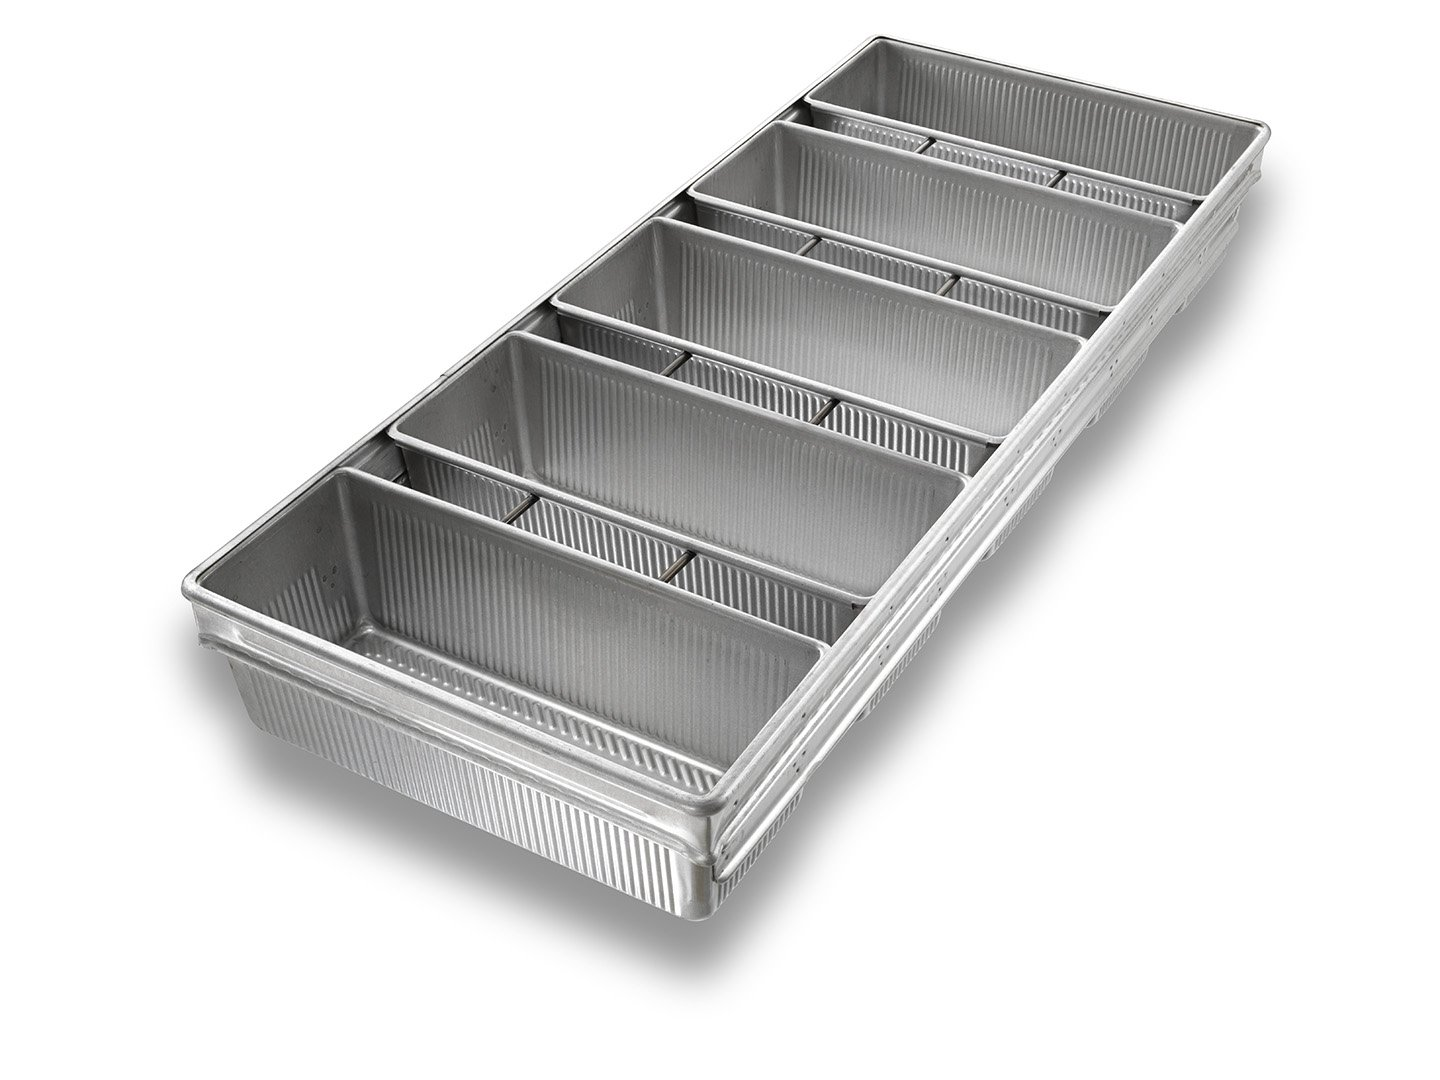 5-in-Line Pullman Bread Pan - AMERICOAT® Coating